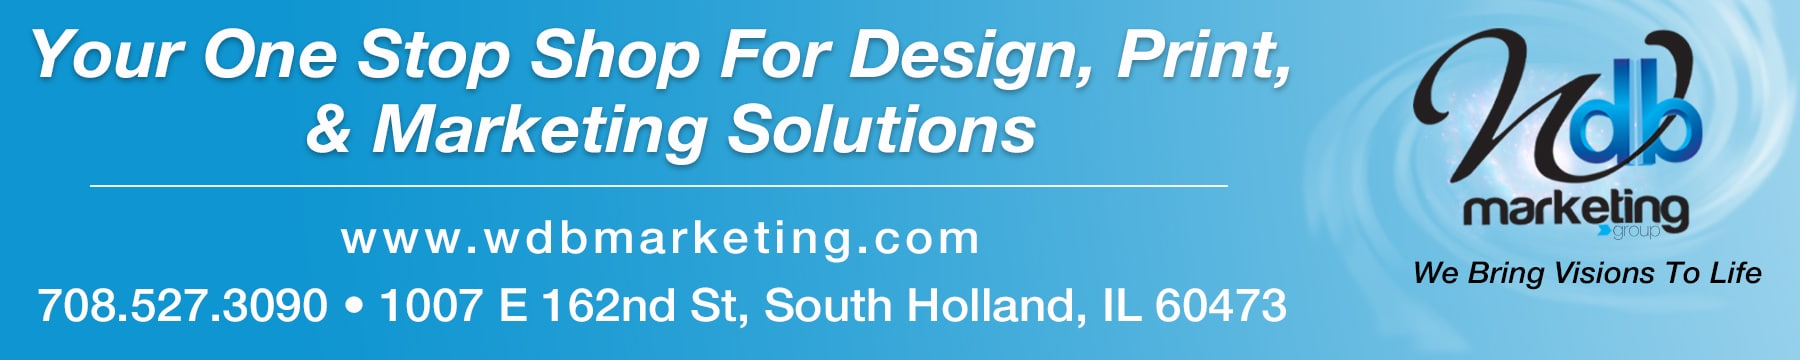 Contact WDB Marketing